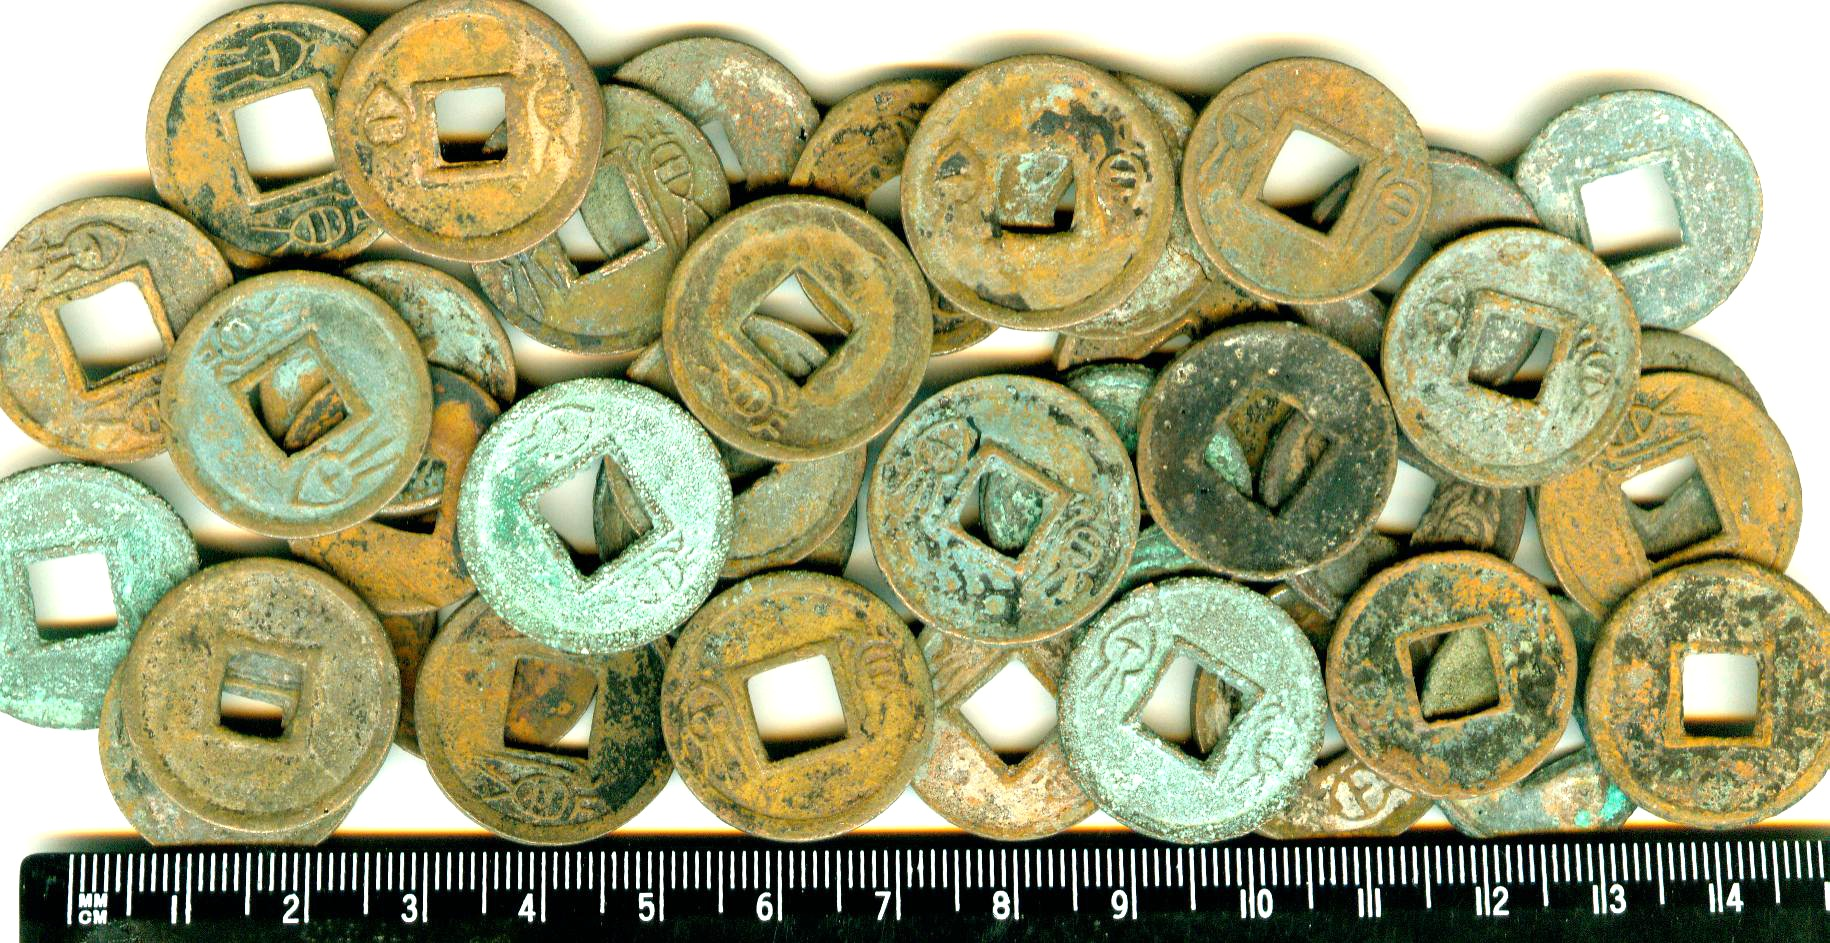 K2019, 50 pcs Huo Quan Coins, China Wang Mang Period AD 7-23